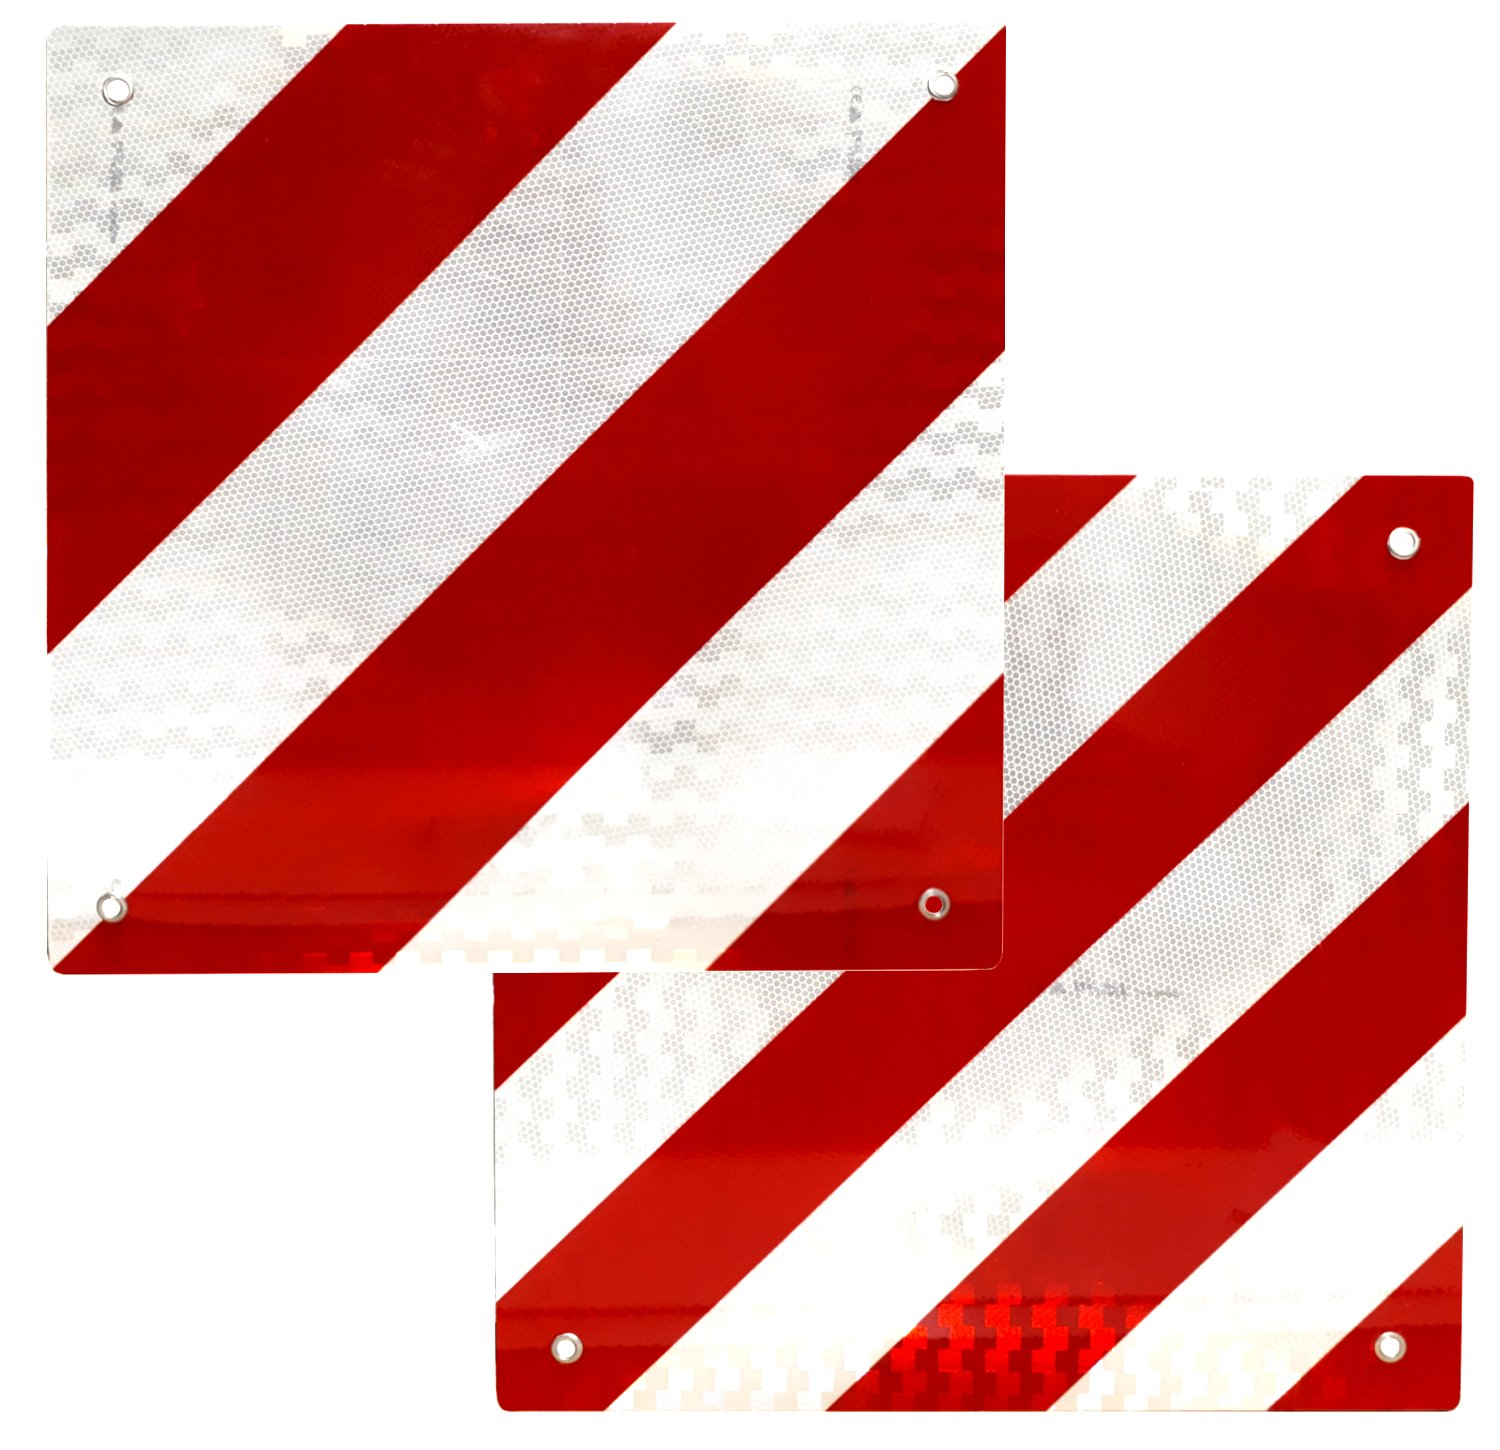 load warning Sign Reflective for Spain and Italy 50 x 50 Centimeter Red White (Spain & Italy) Family Motoring & Leisure